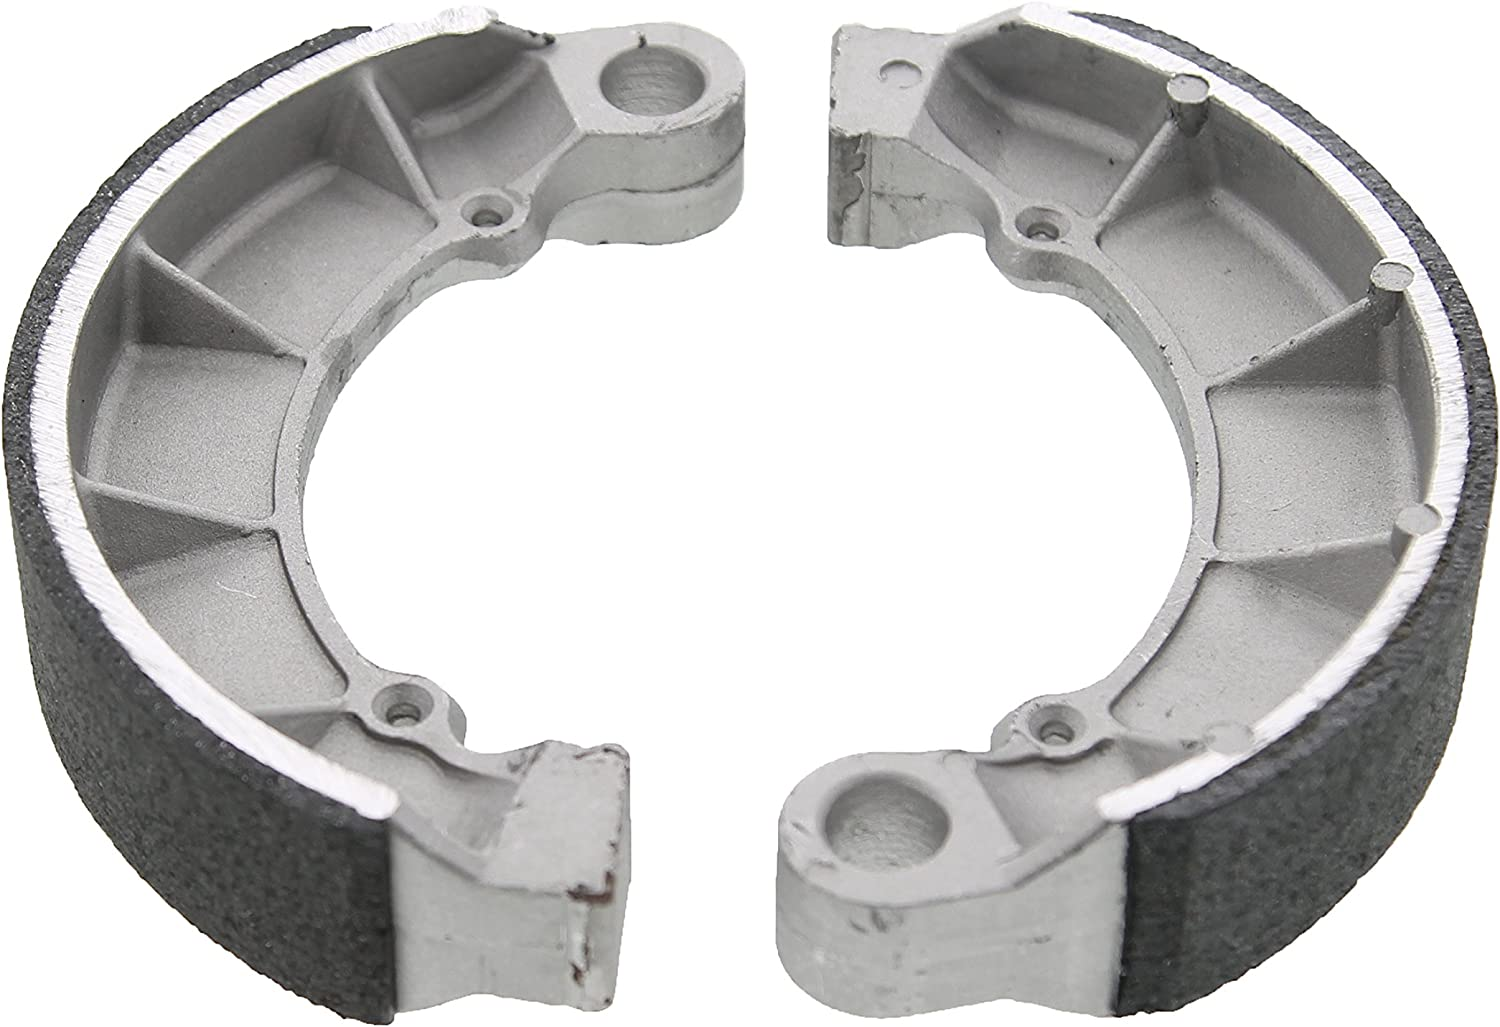 Honda Foreman or Rancher 350 400 450 Rear Brake Drum TRX450 TRX350 TRX400 NEW